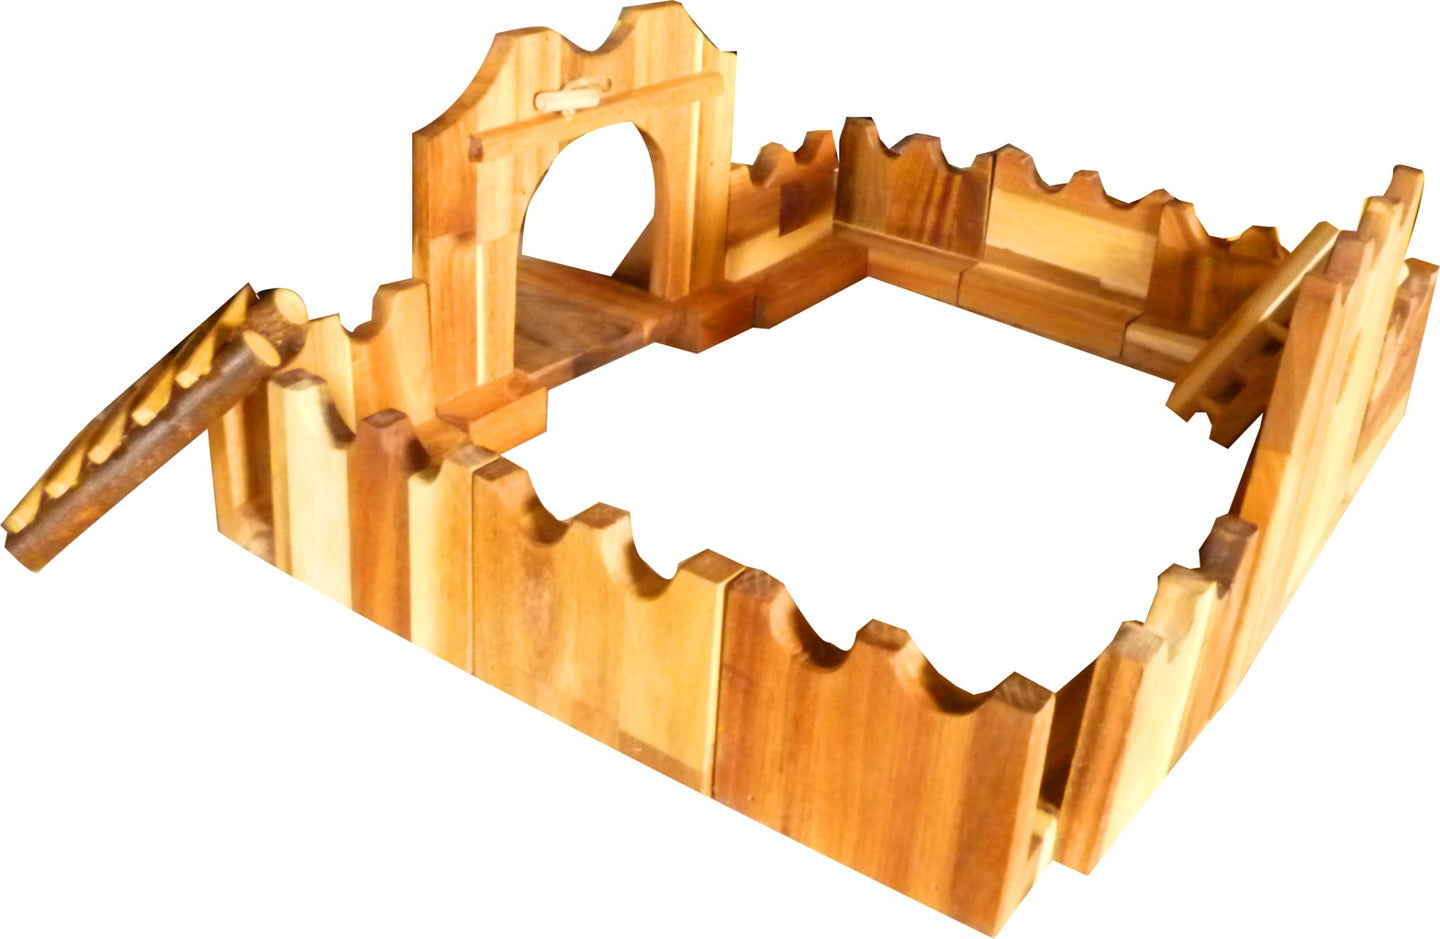 Wooden jumbo castle building set